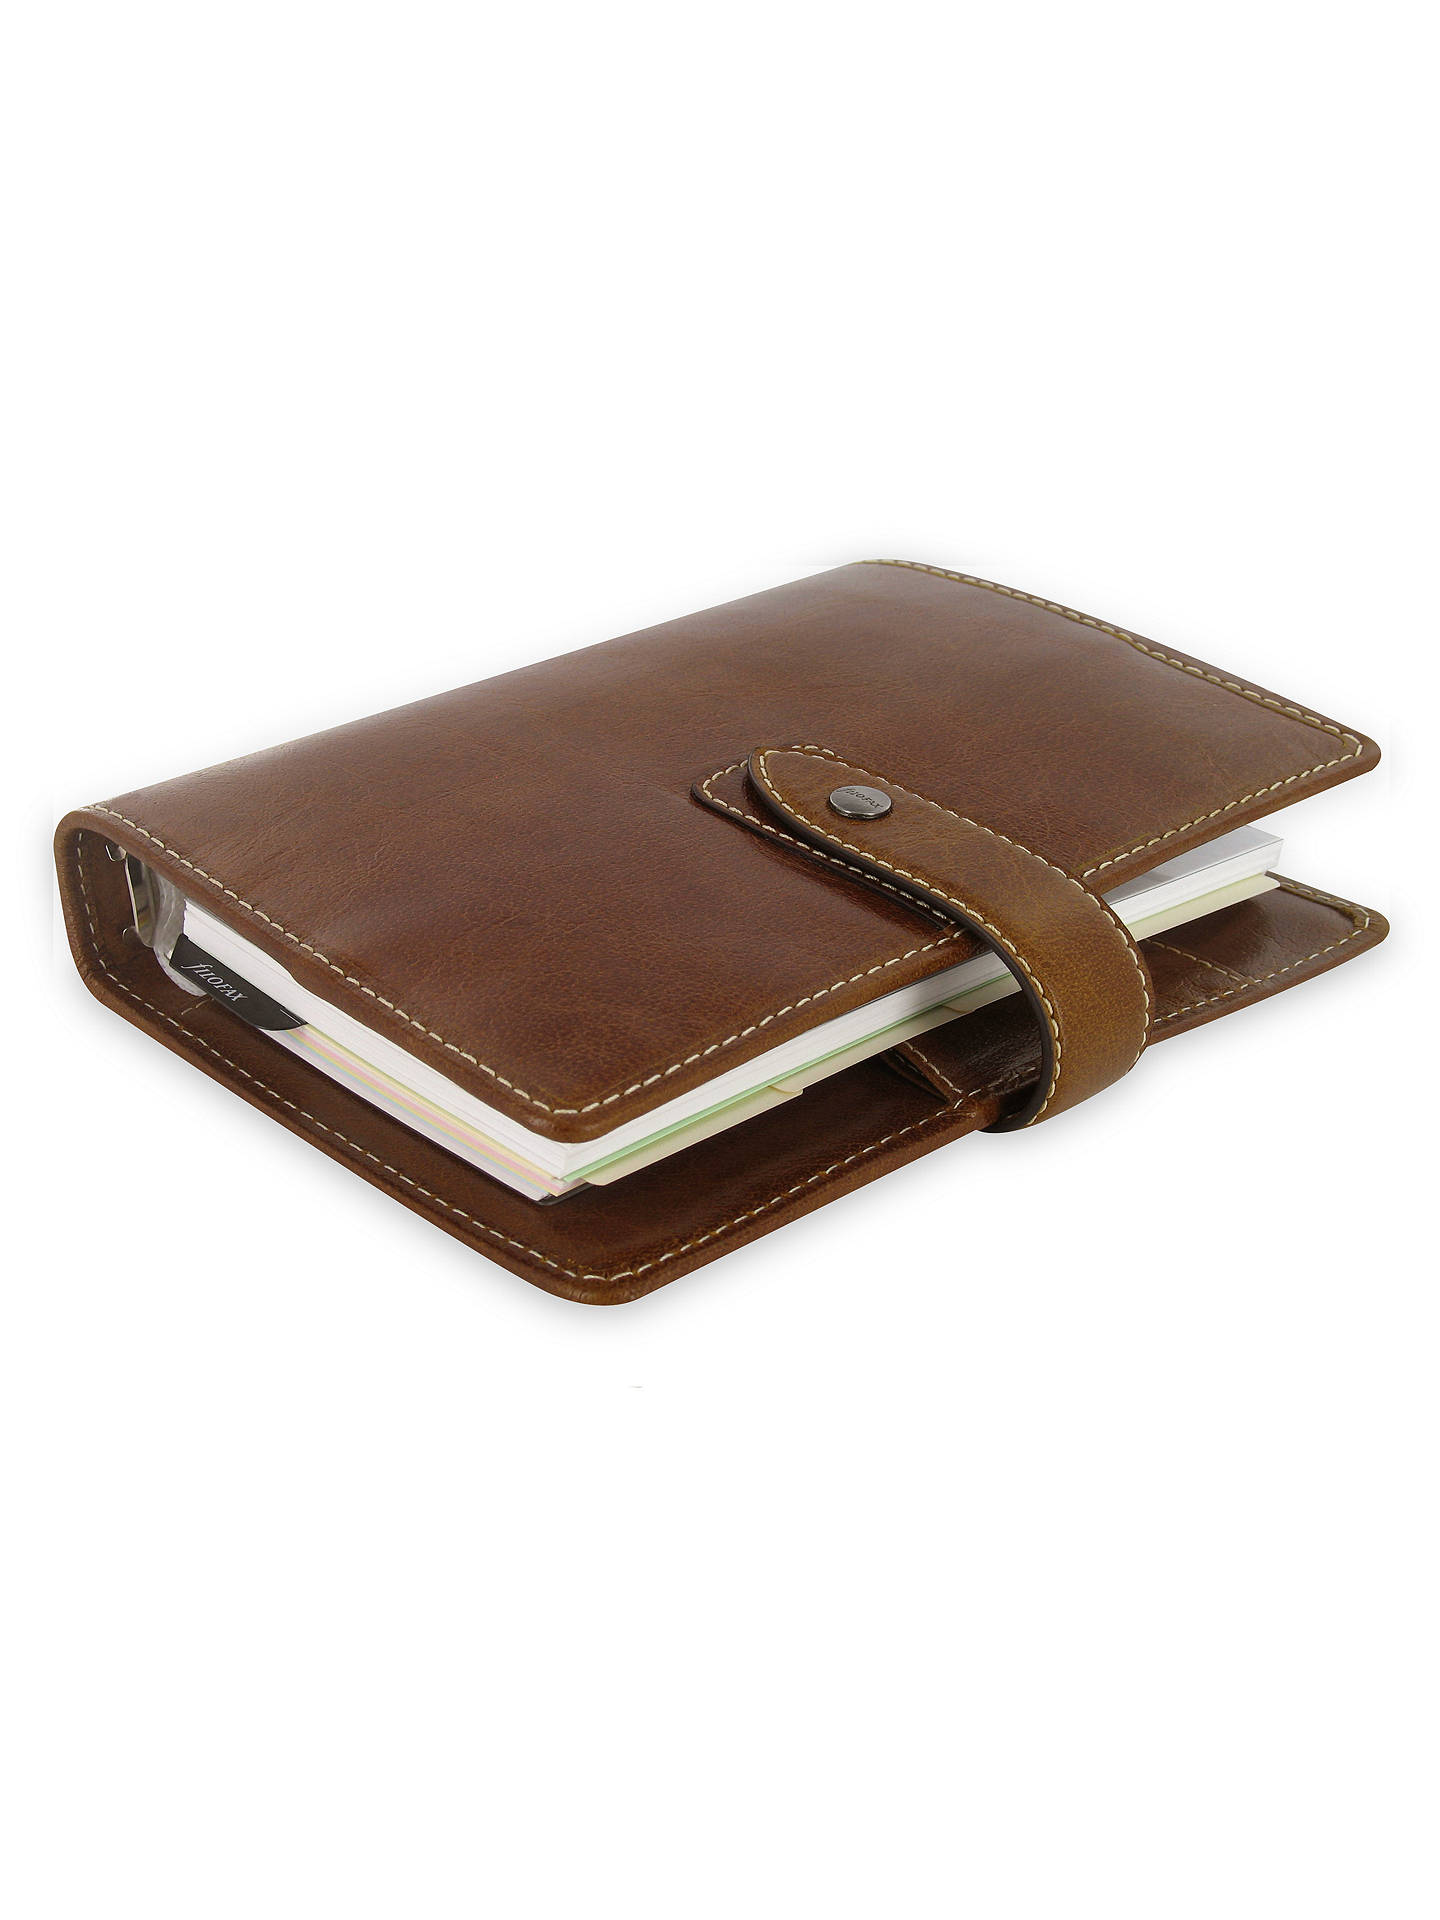 Buy Filofax Leather Malden Personal Organiser, Ochre Online at johnlewis.com